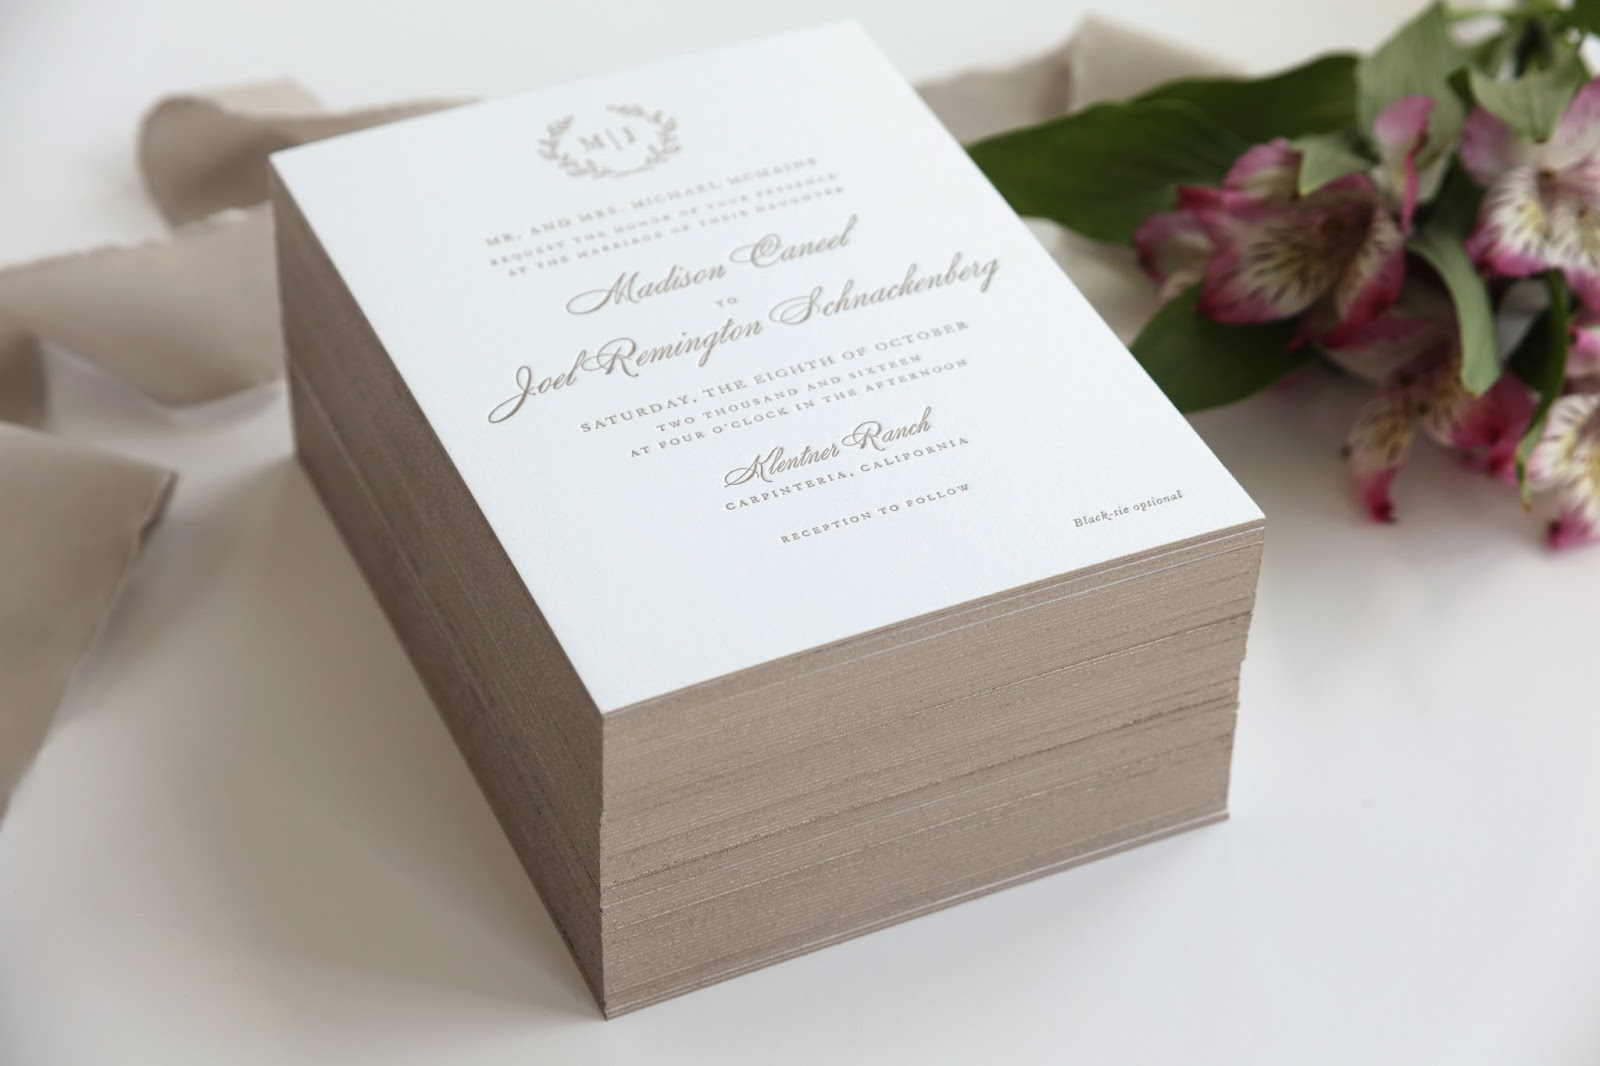 Letterpress Invitations with Edge Painting | Sweetly Said Press